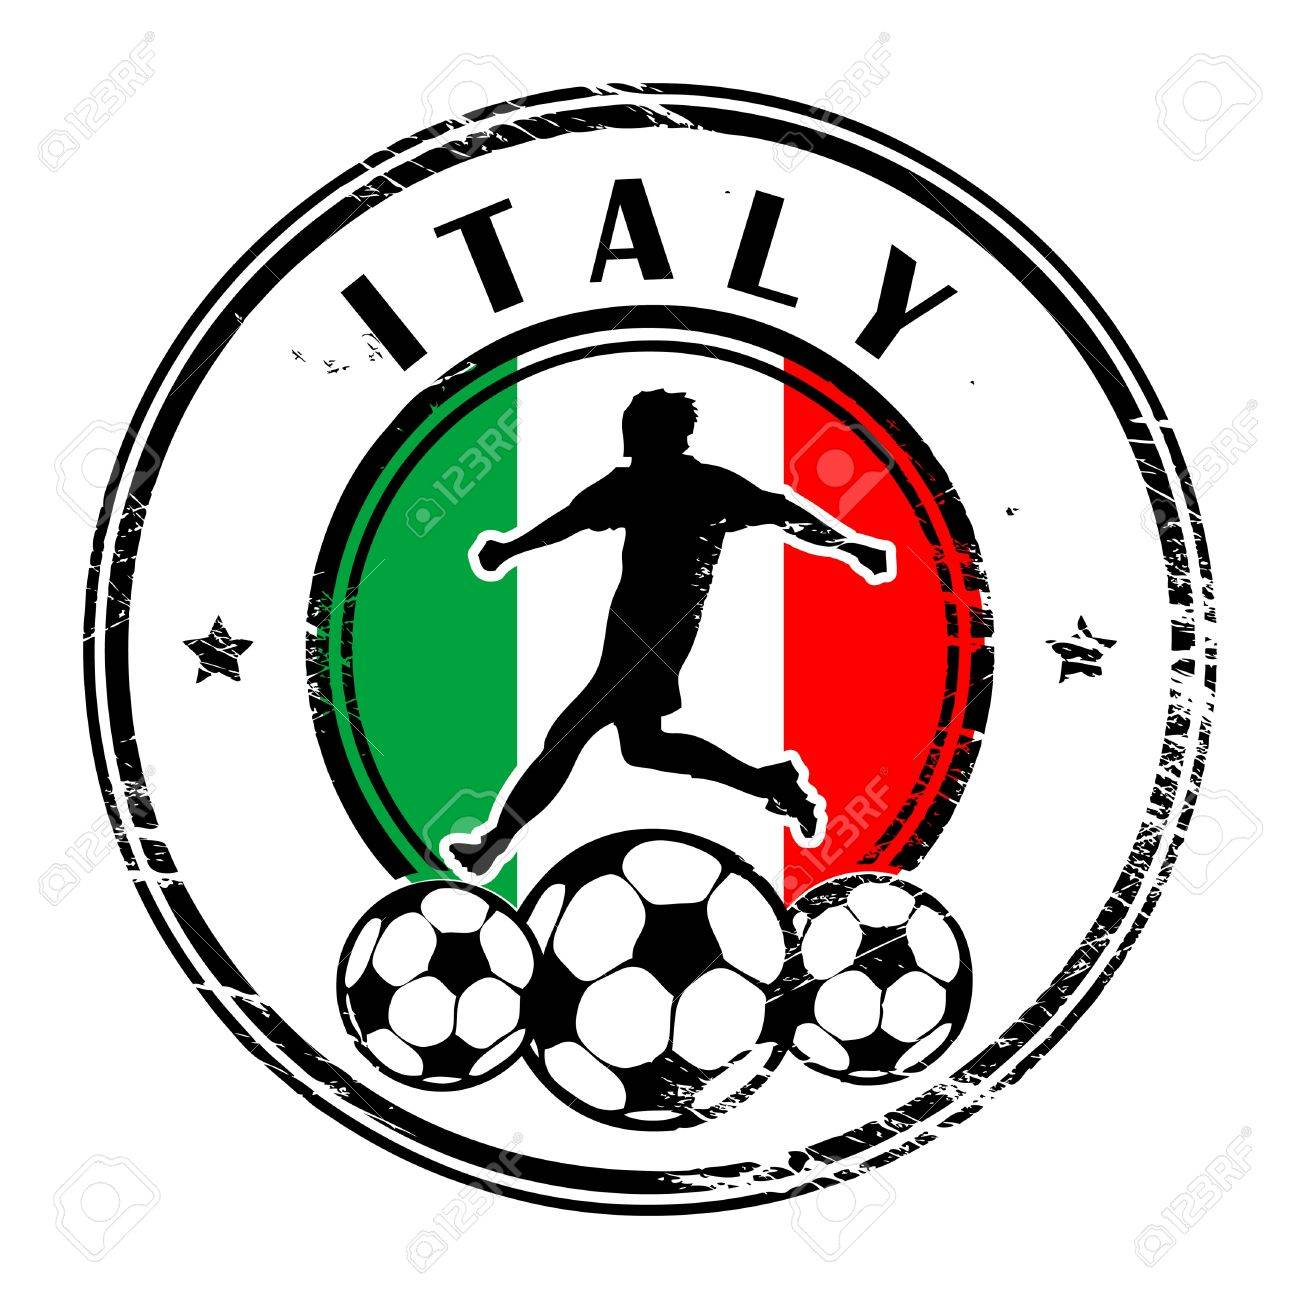 Grunge stamp with football and name Italy Stock Vector - 13821939